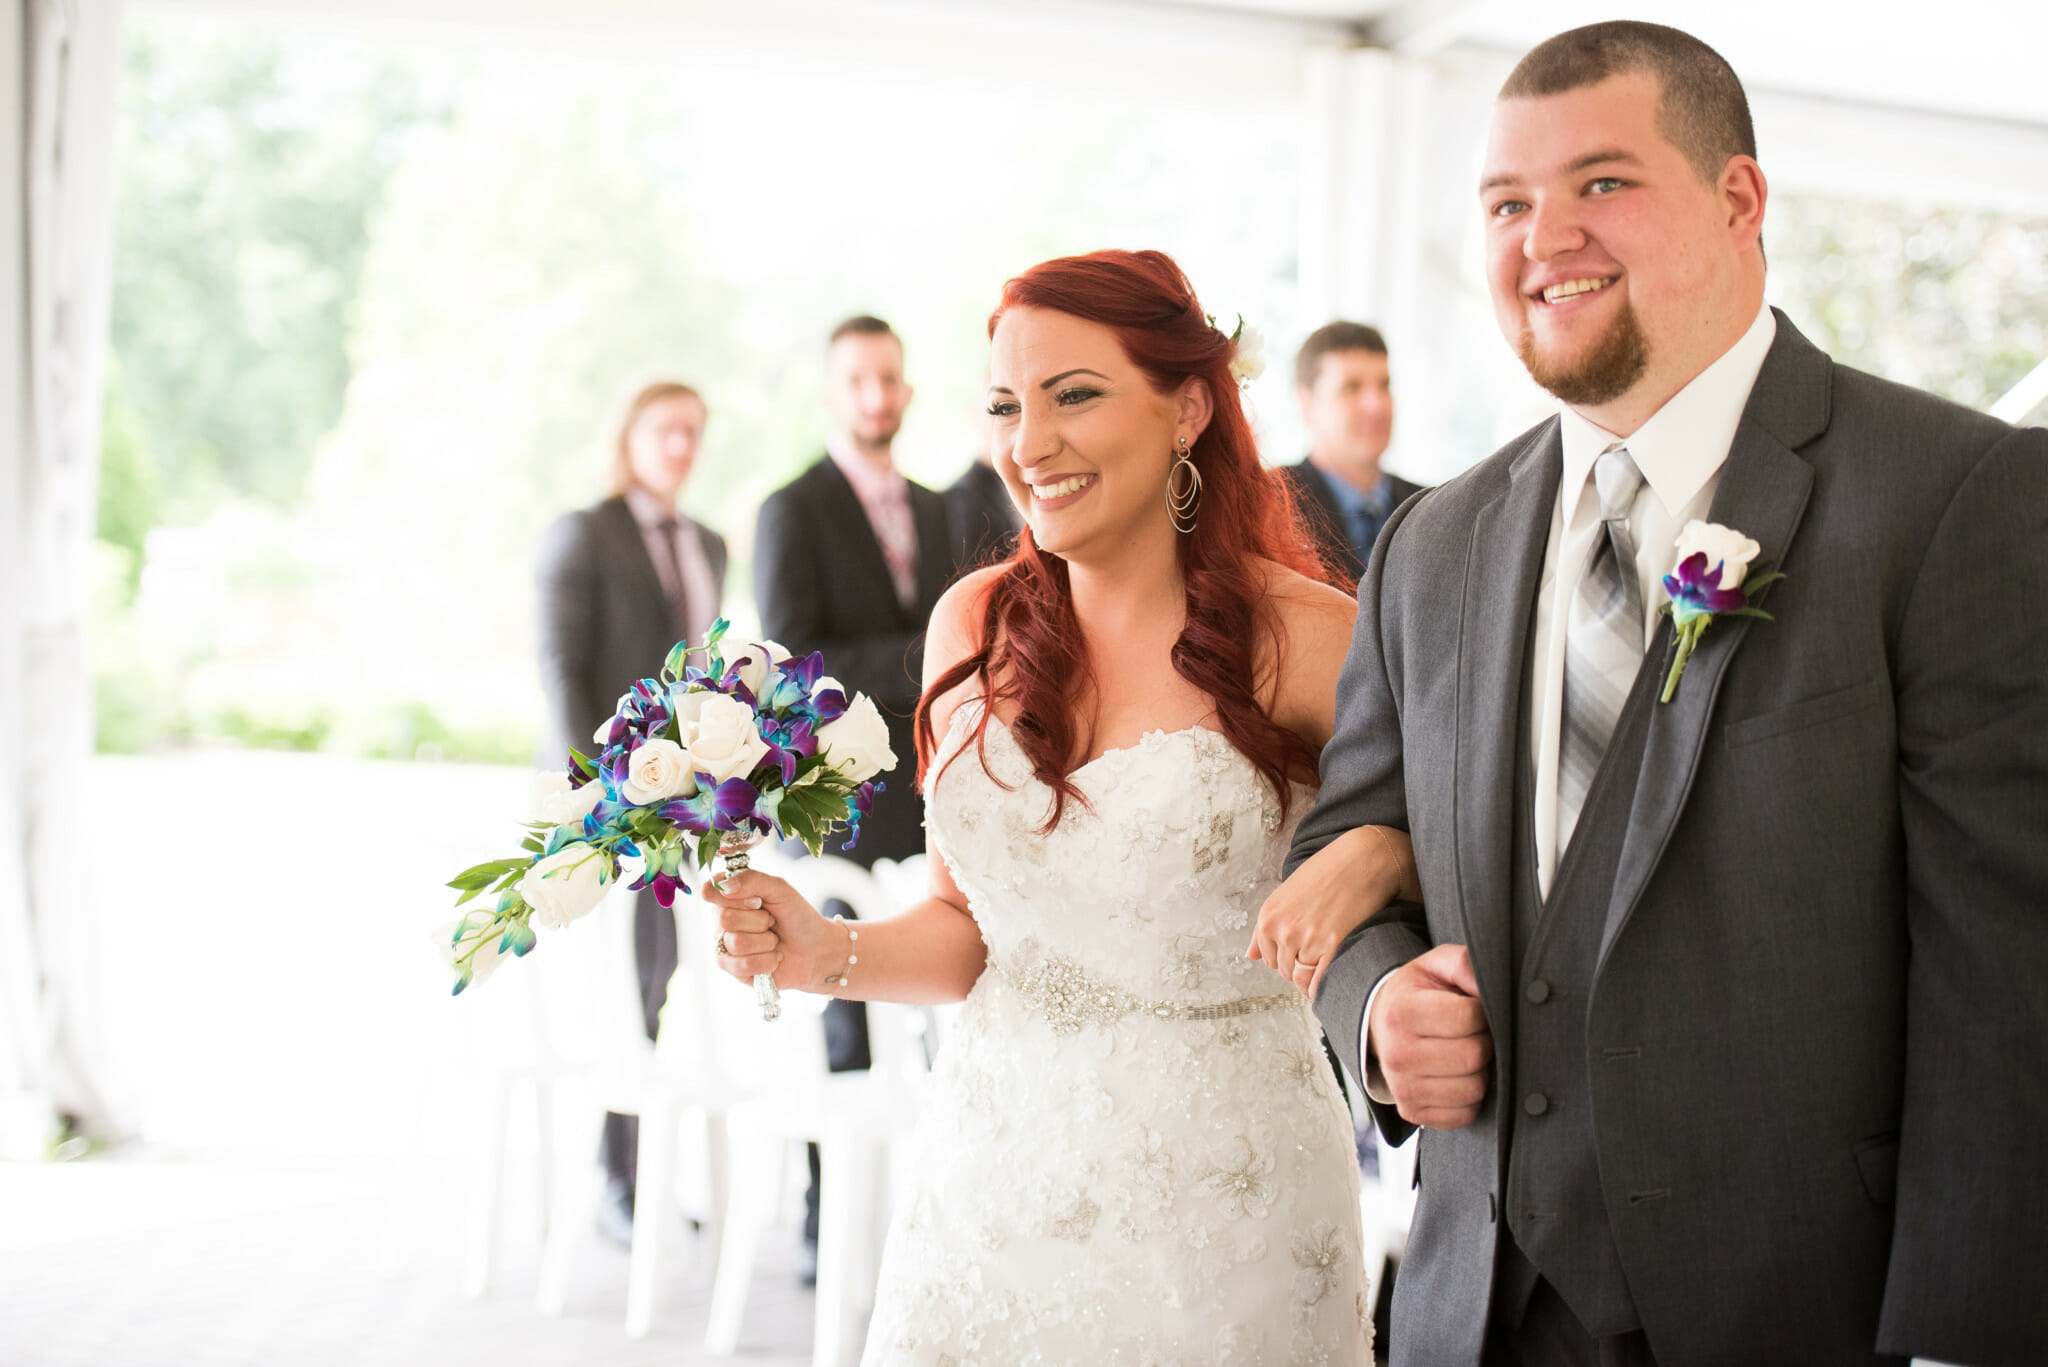 newlyweds walk down aisle